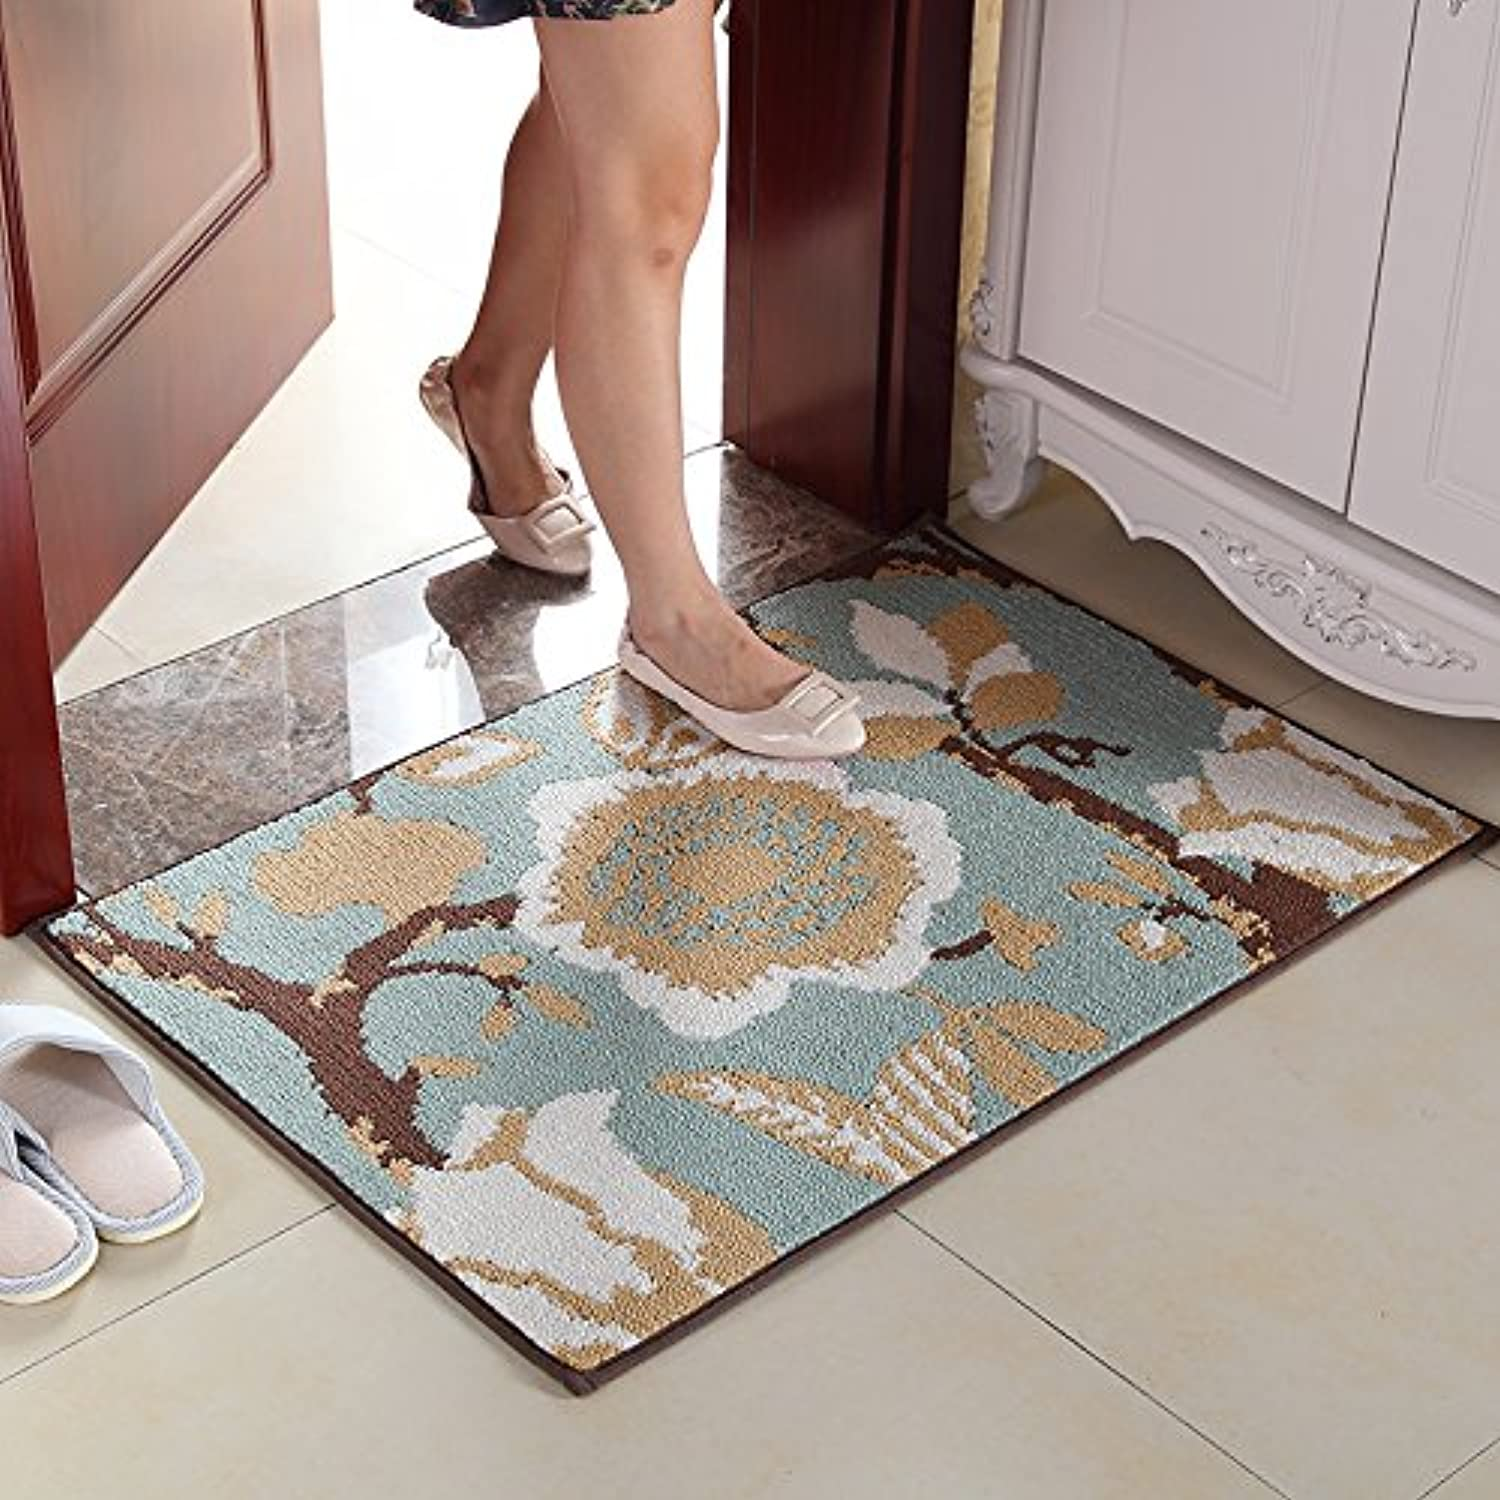 JinYiDian'Shop-Continental Mats Door Mat The Carpet Of The Bedrooms Kitchen Suction Feet ,4570Cm,7280-2